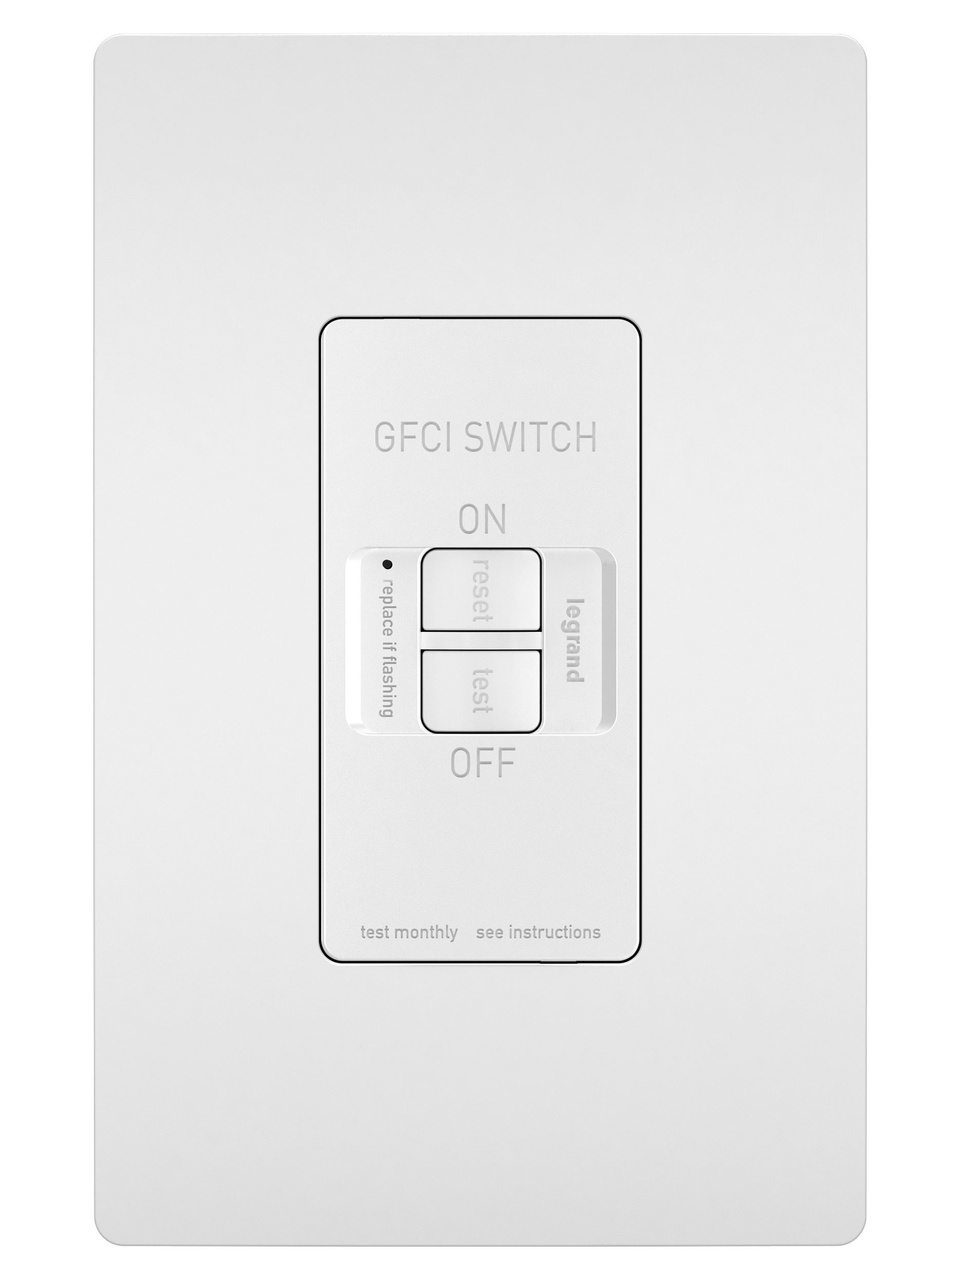 gfci outlet with switch wiring diagram murray riding lawn mower ignition outlets by legrand spec grade dead front 20a self test receptacle white